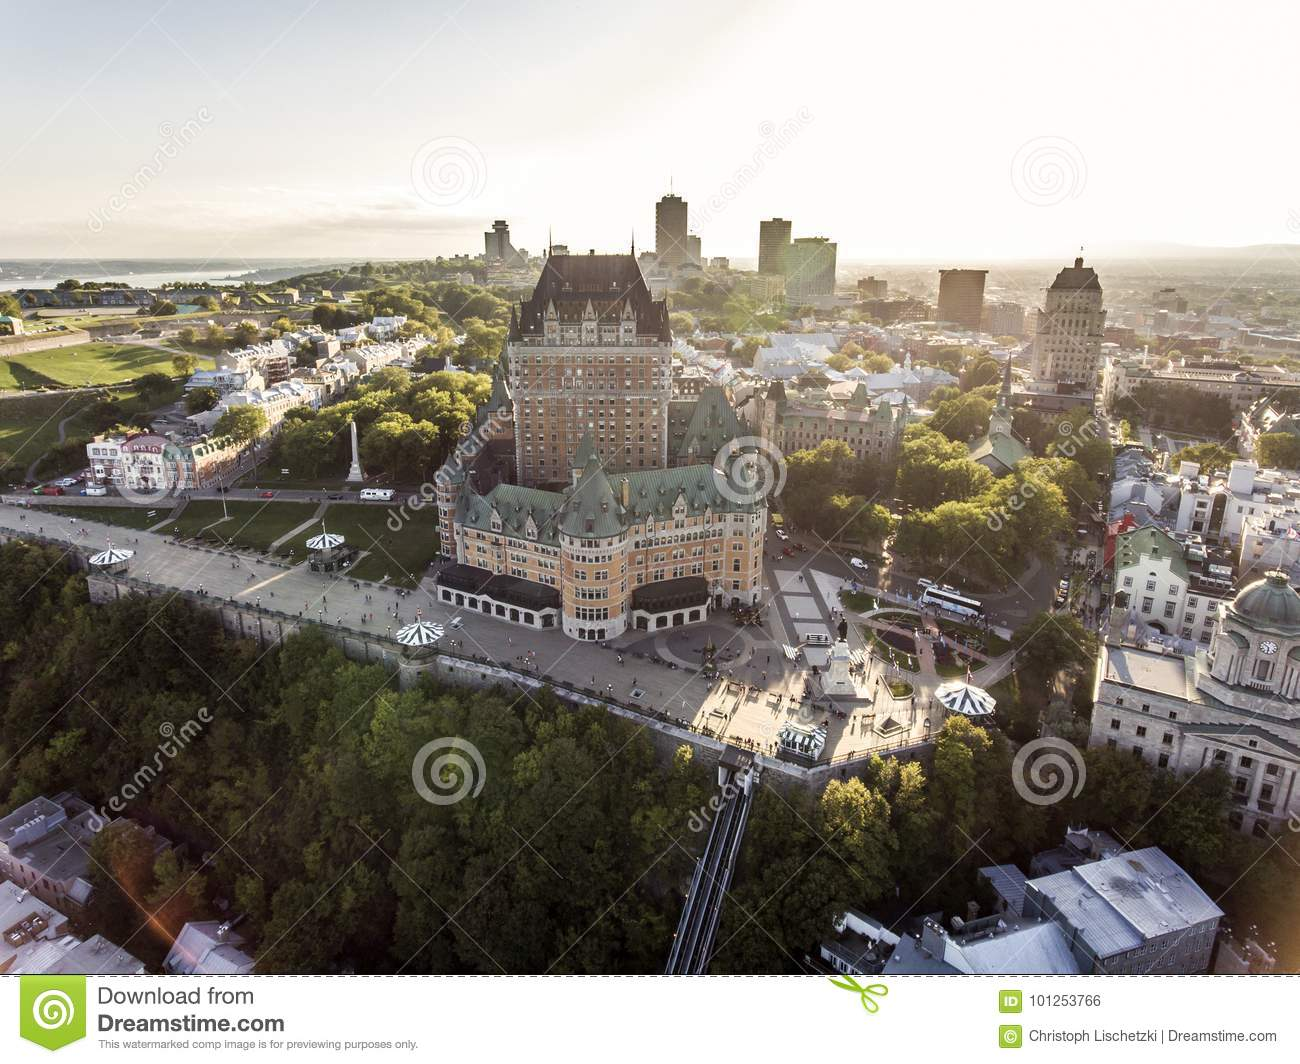 Aerial helicopter view of Chateau Frontenac hotel and Old Port in Quebec City Canada.